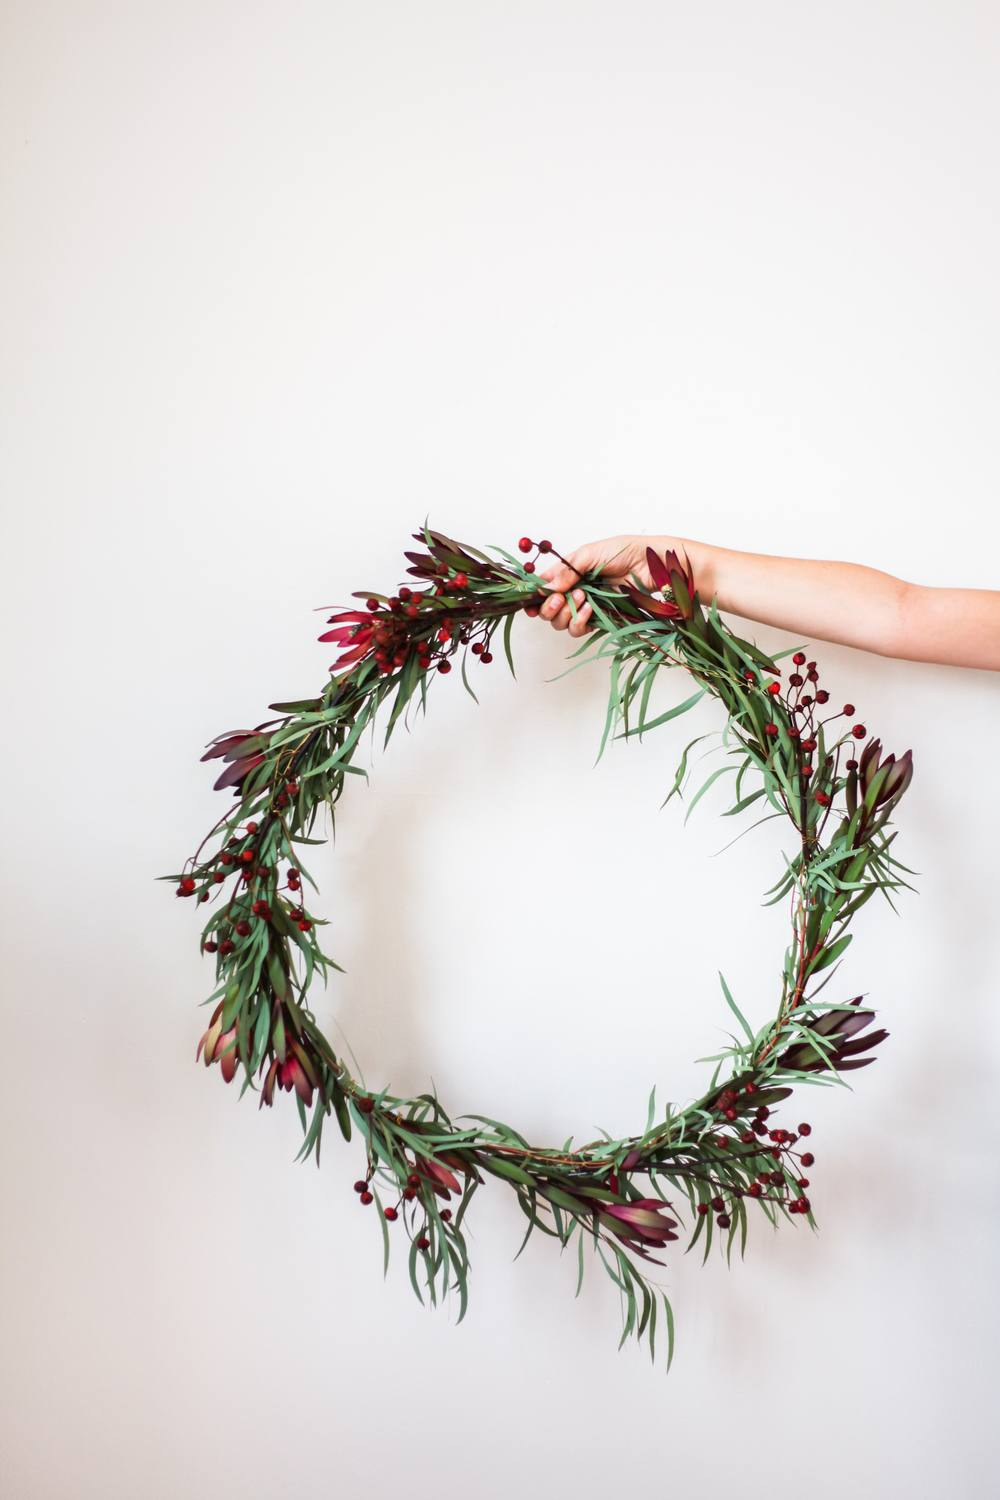 Easy DIY Christmas Wreath Ideas - Learn How to Make a Christmas Wreath